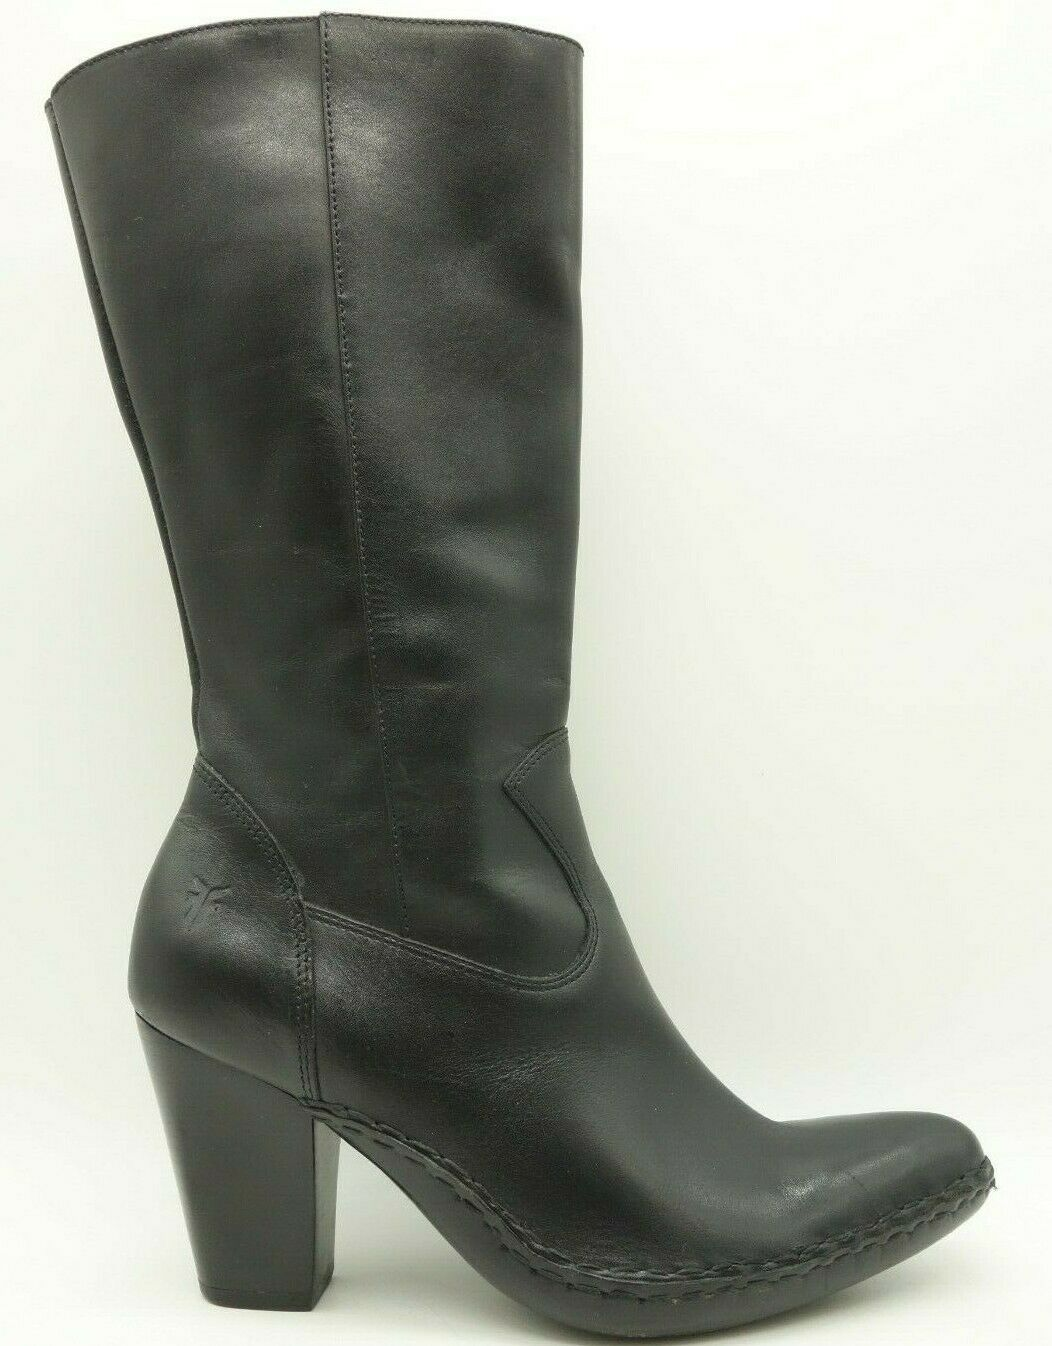 Frye Black Leather Dress Causal Fringe Side Zip Tall Chunk Heel Boot Womens 7 M